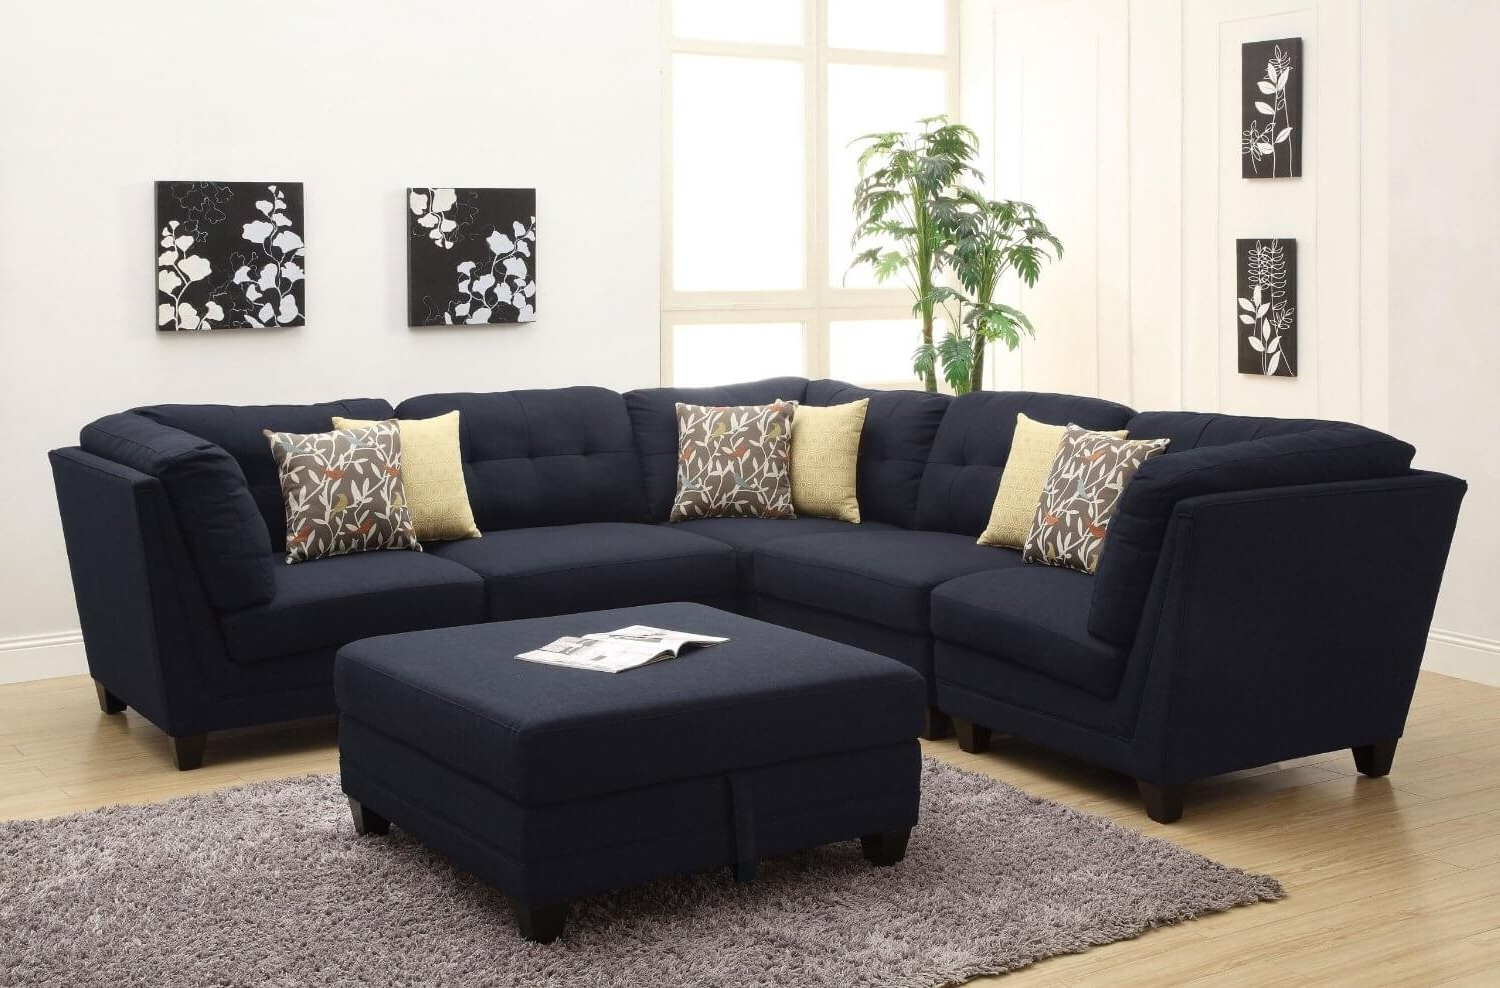 Eco Friendly Sectional Sofas Intended For Popular 100 Awesome Sectional Sofas Under $1,000 (2018) (View 6 of 15)